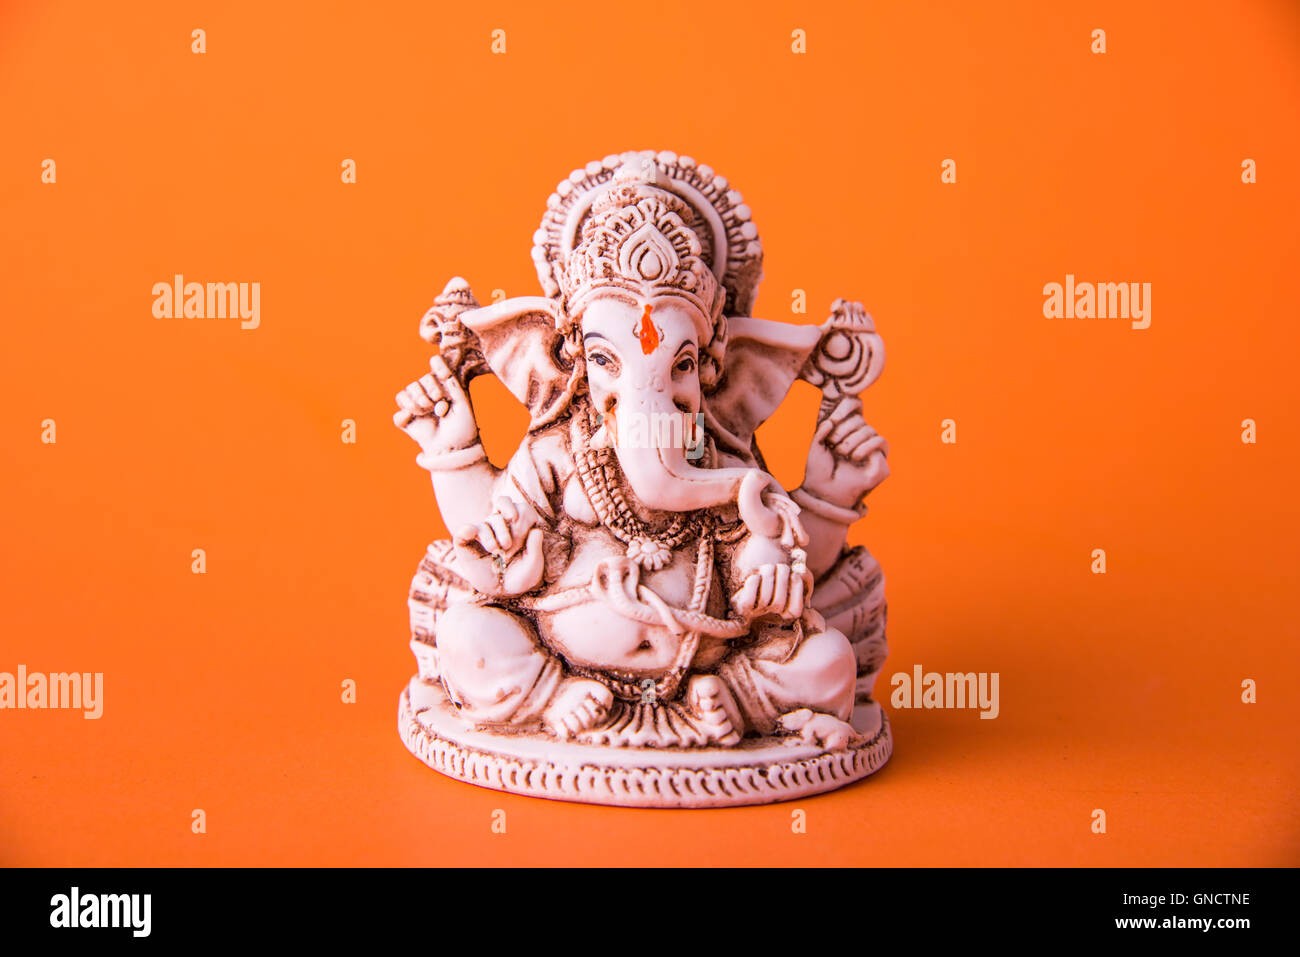 Happy Ganesh Chaturthi Greeting Card Showing Photograph Of Lord